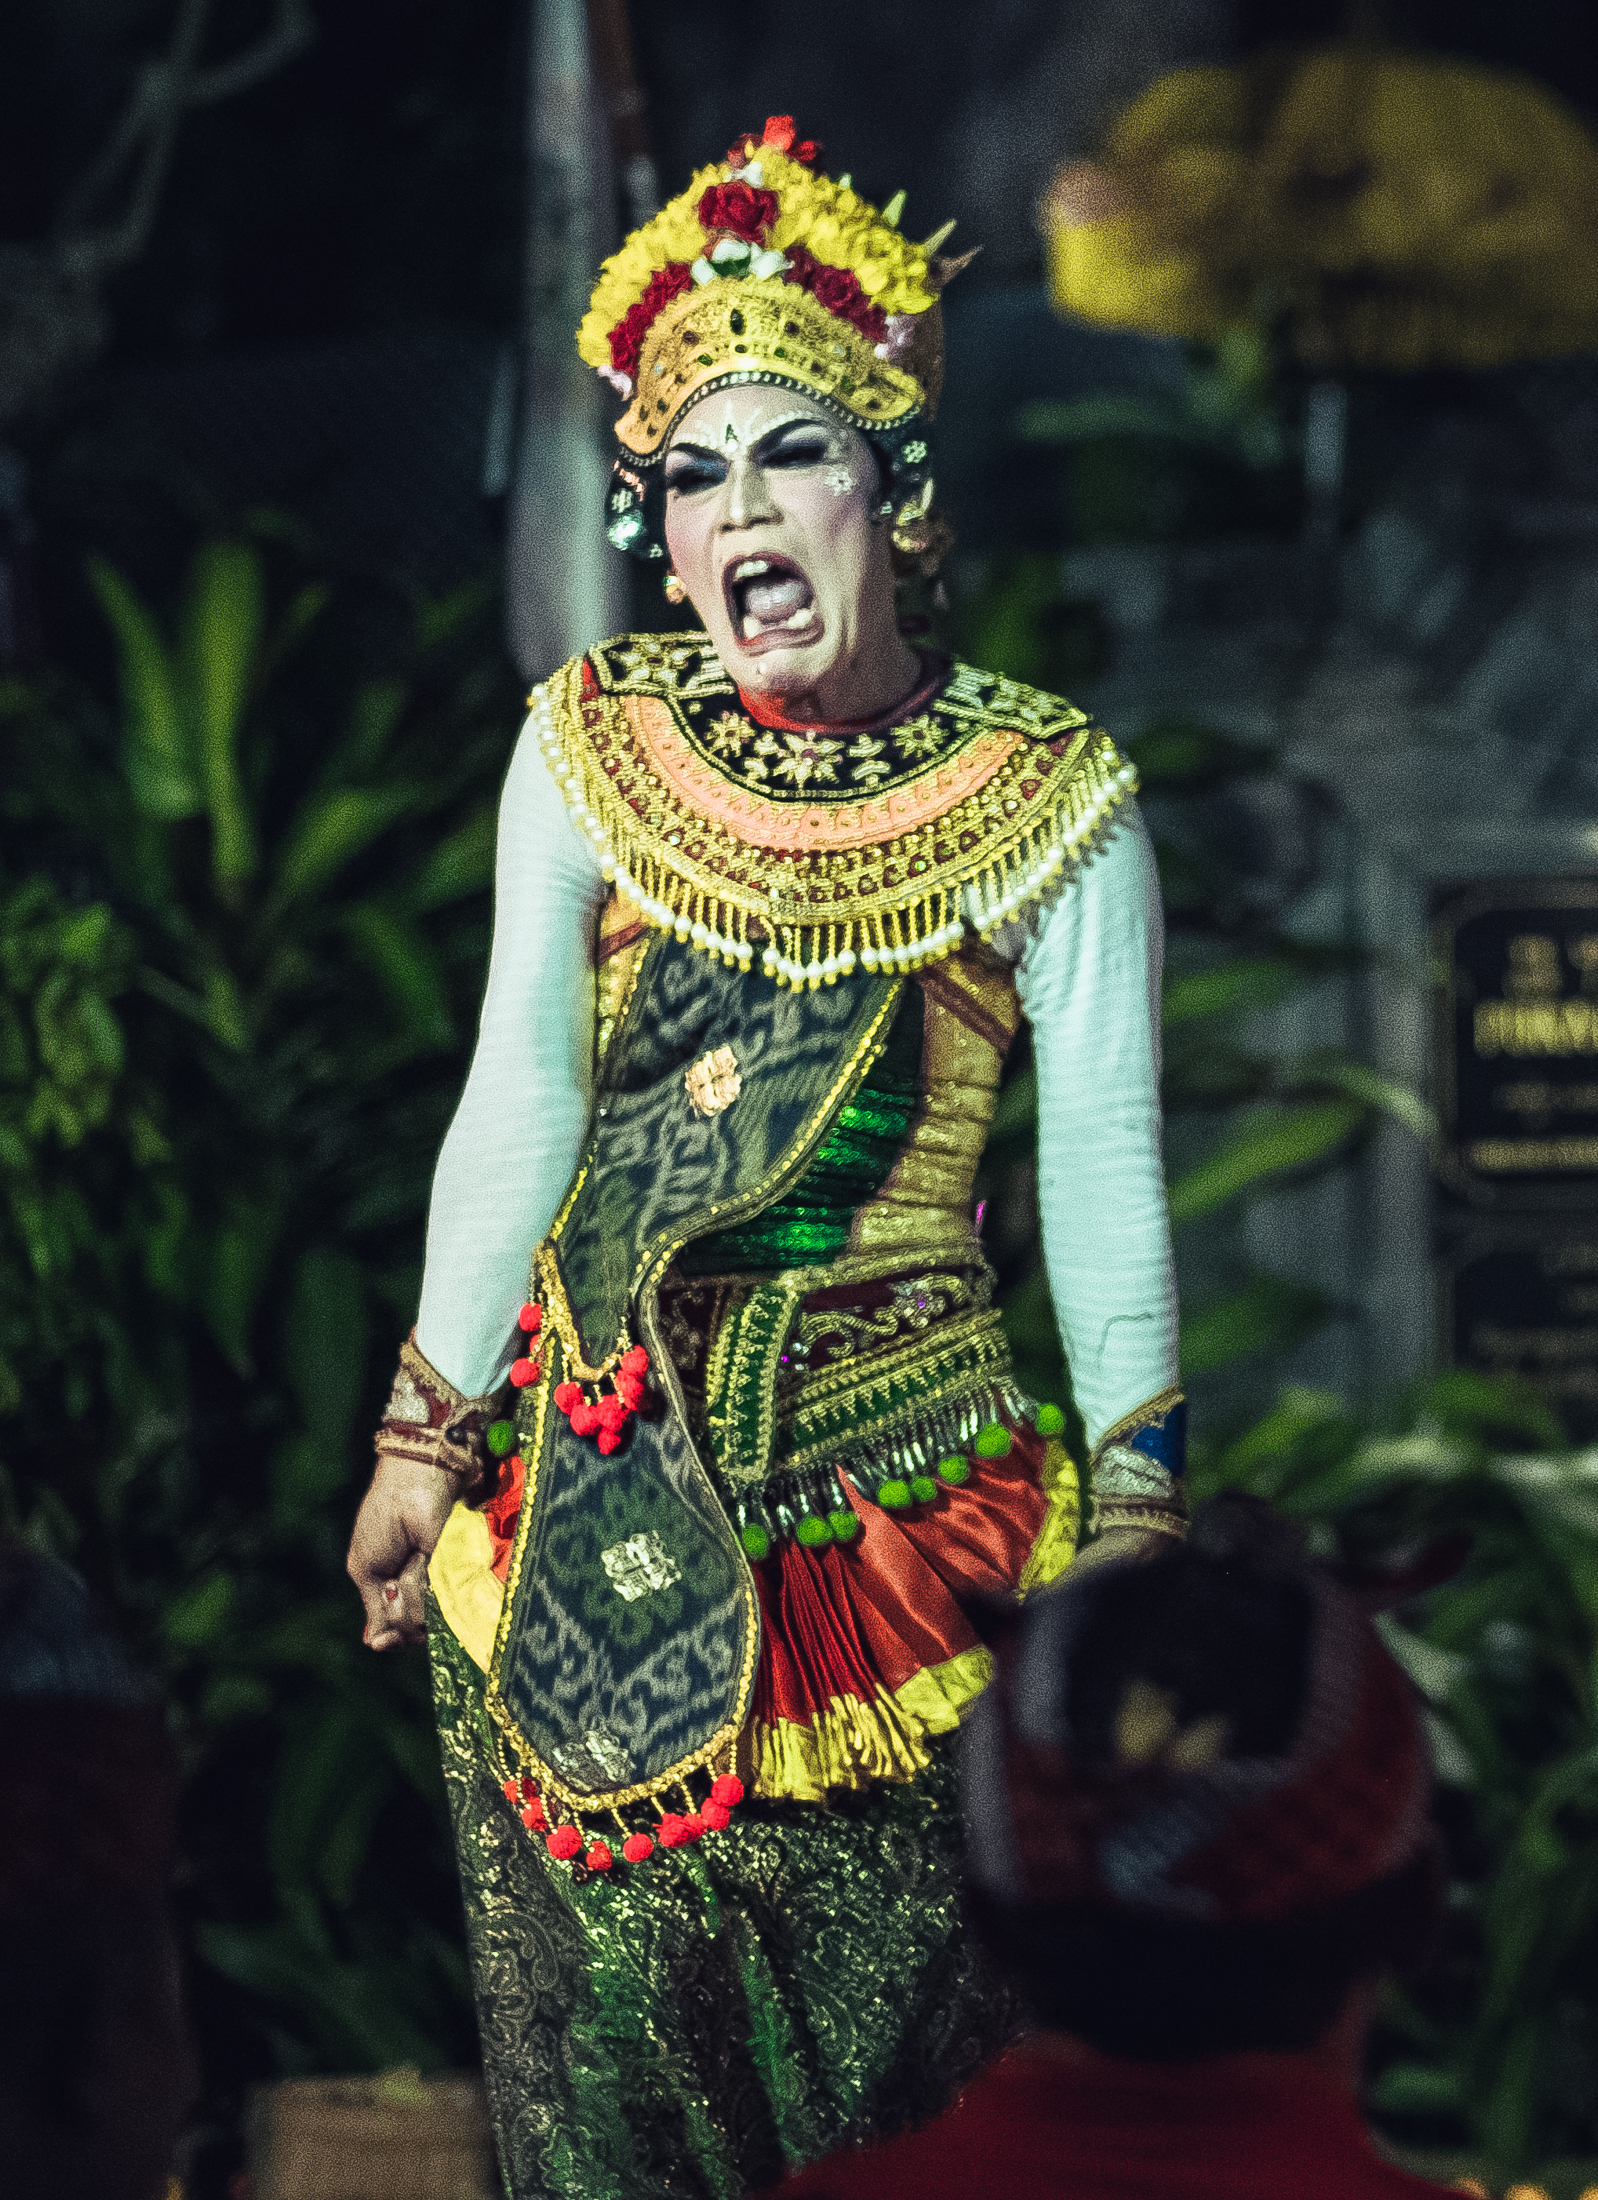 Ratna - Ratna Manggali is Calon Arang's daughter.Although beautiful, she is unable to get a husband because people were afraid of her mother.